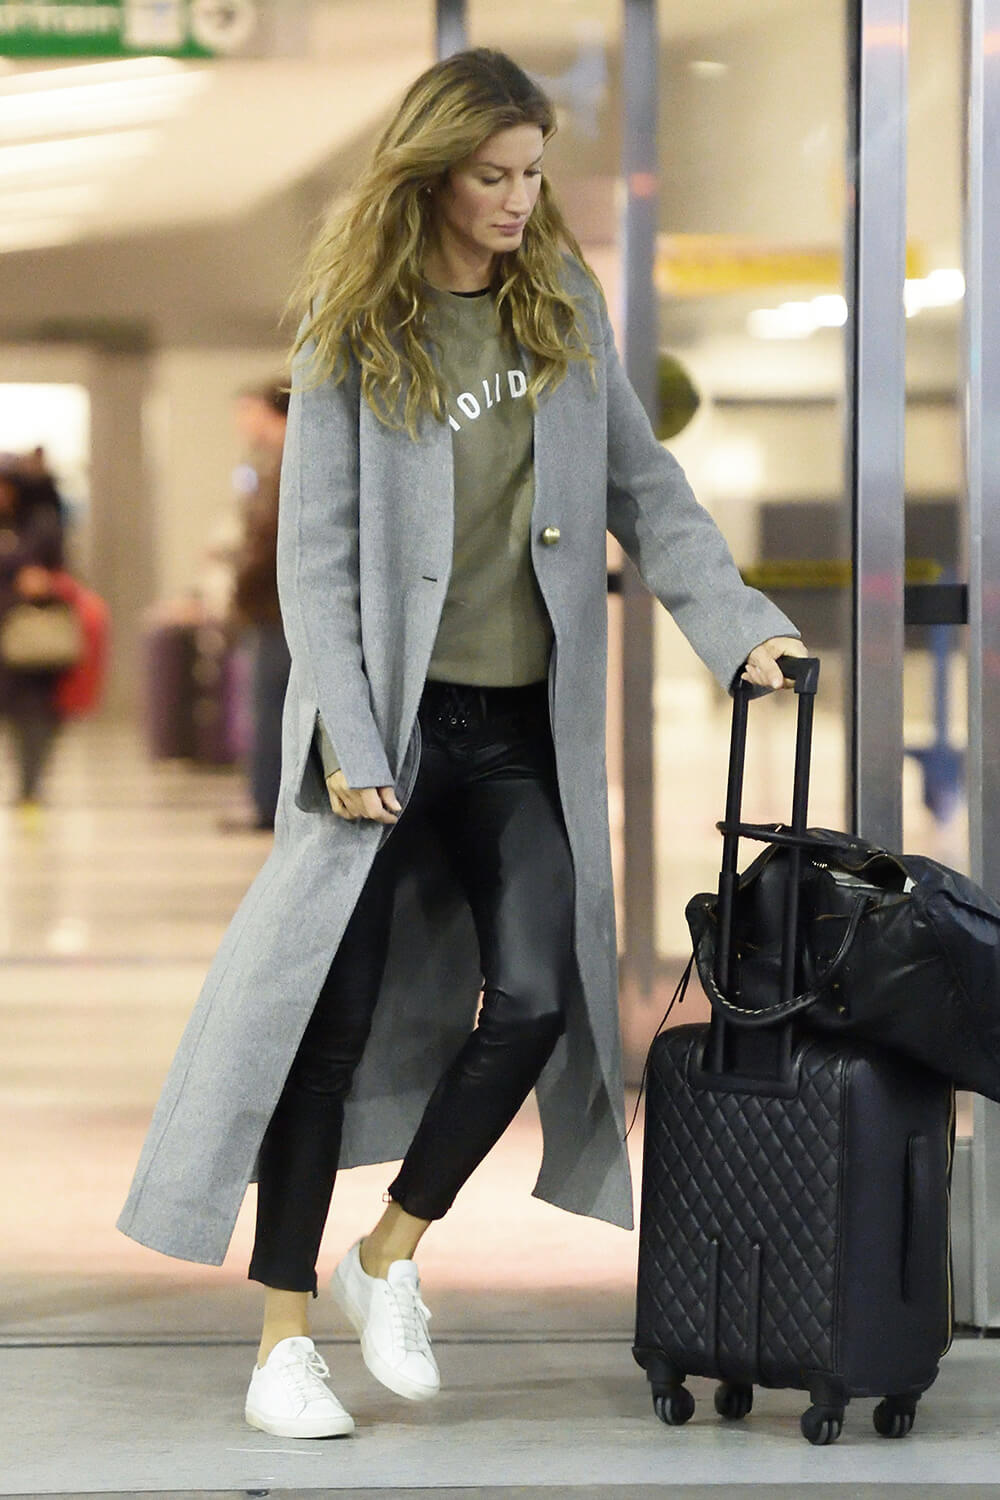 Gisele Bundchen arrives JFK Airport this morning to catch a flight out